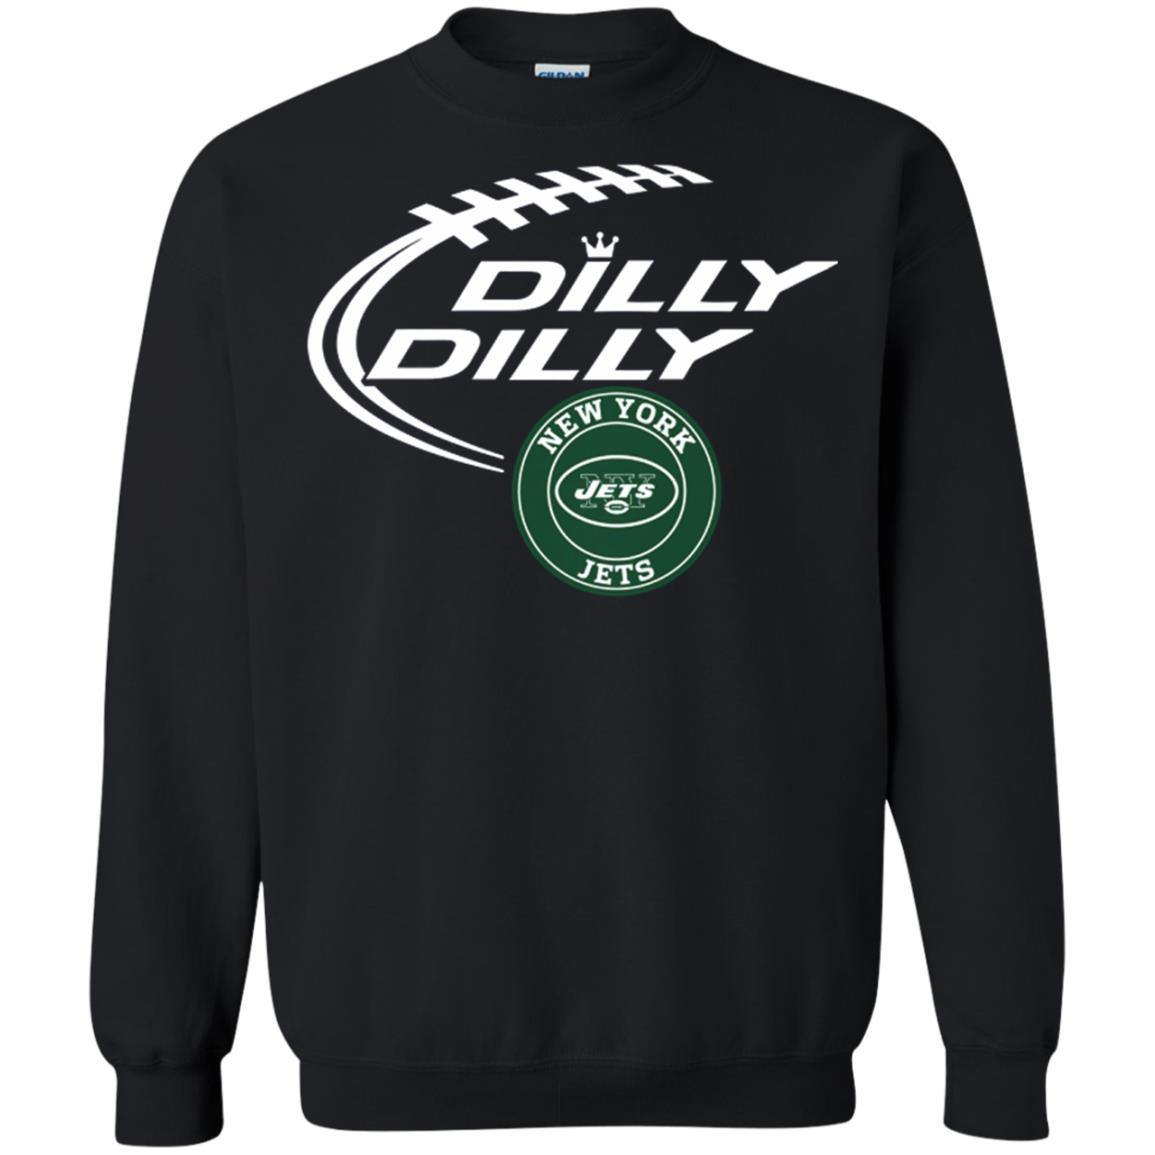 Dilly Dilly New York Jets Shirt